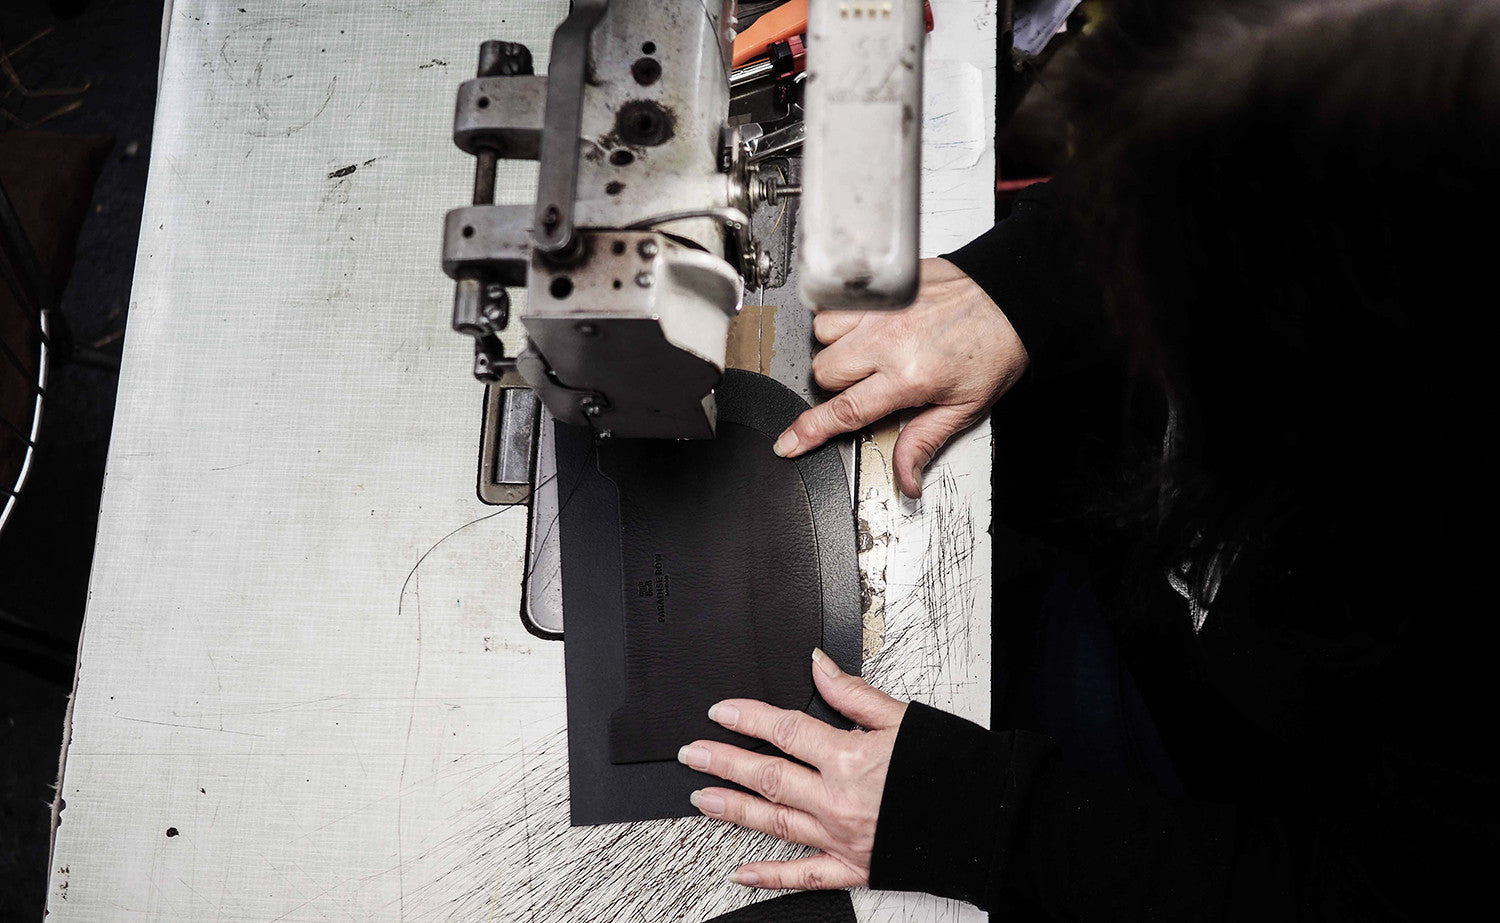 Paradise Row - Heritage Story Inspiration - Design Process Leather Bags being handcrafted in East London